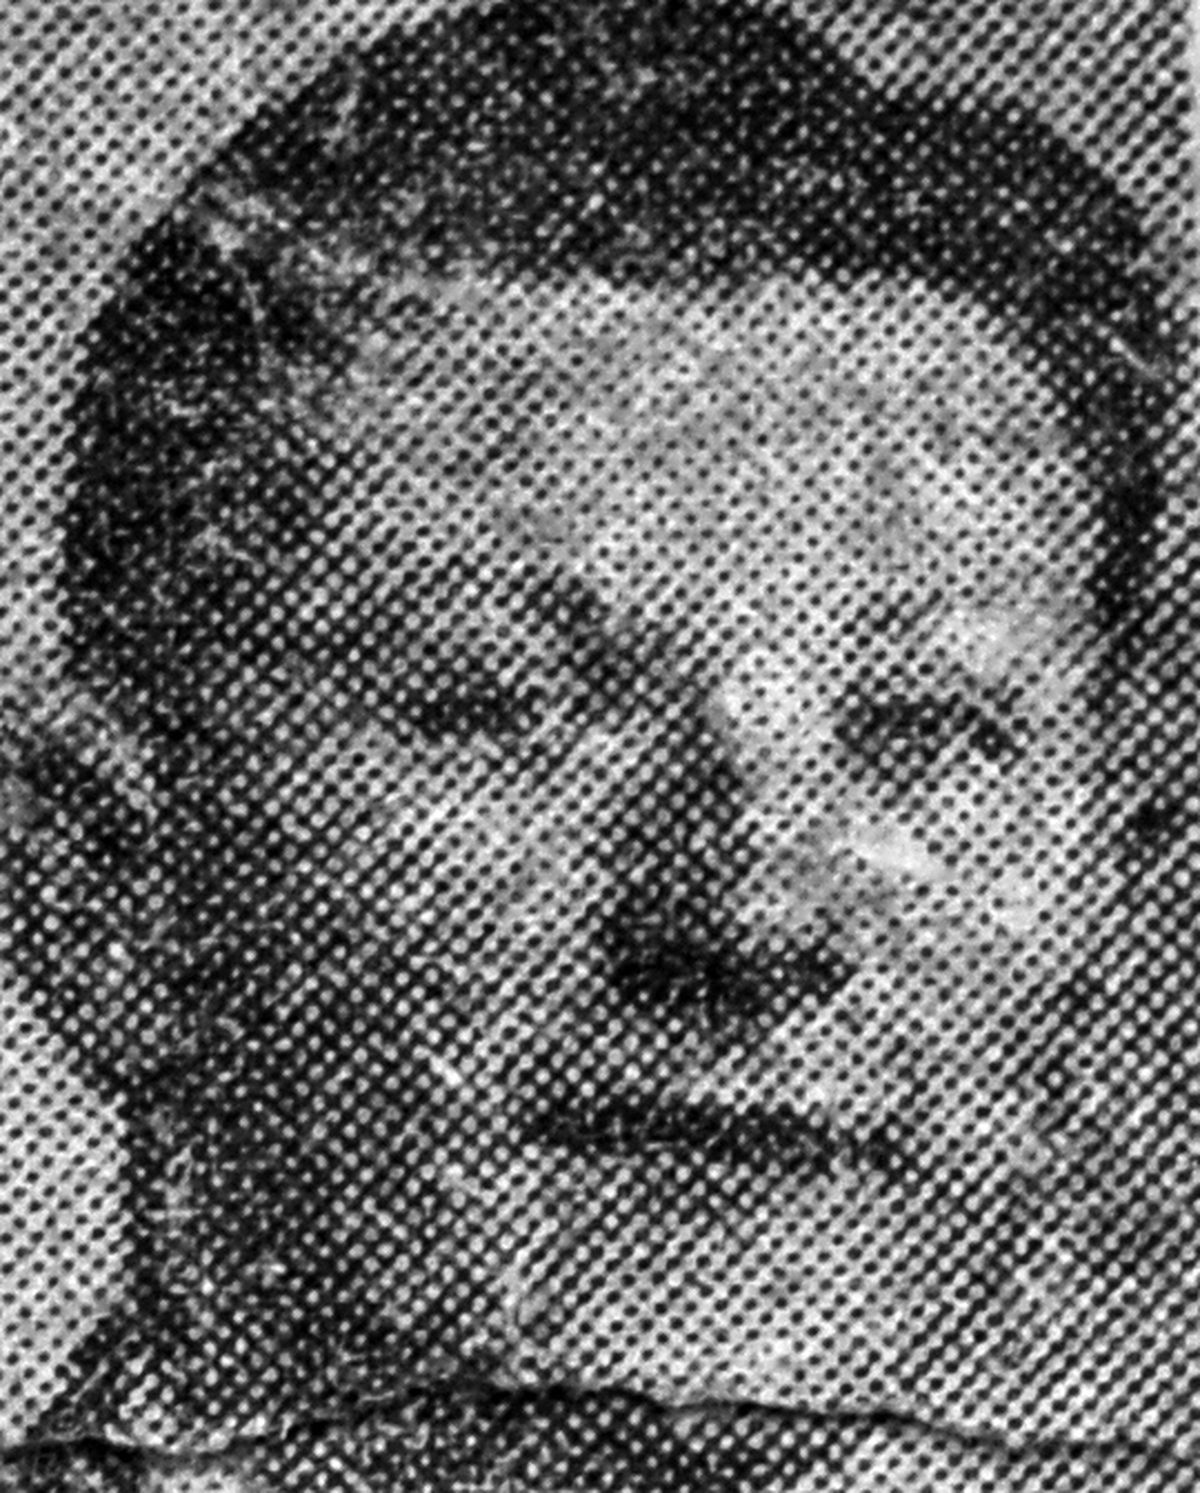 Pte Norman Price, who avoided capture by pretending to be a pig